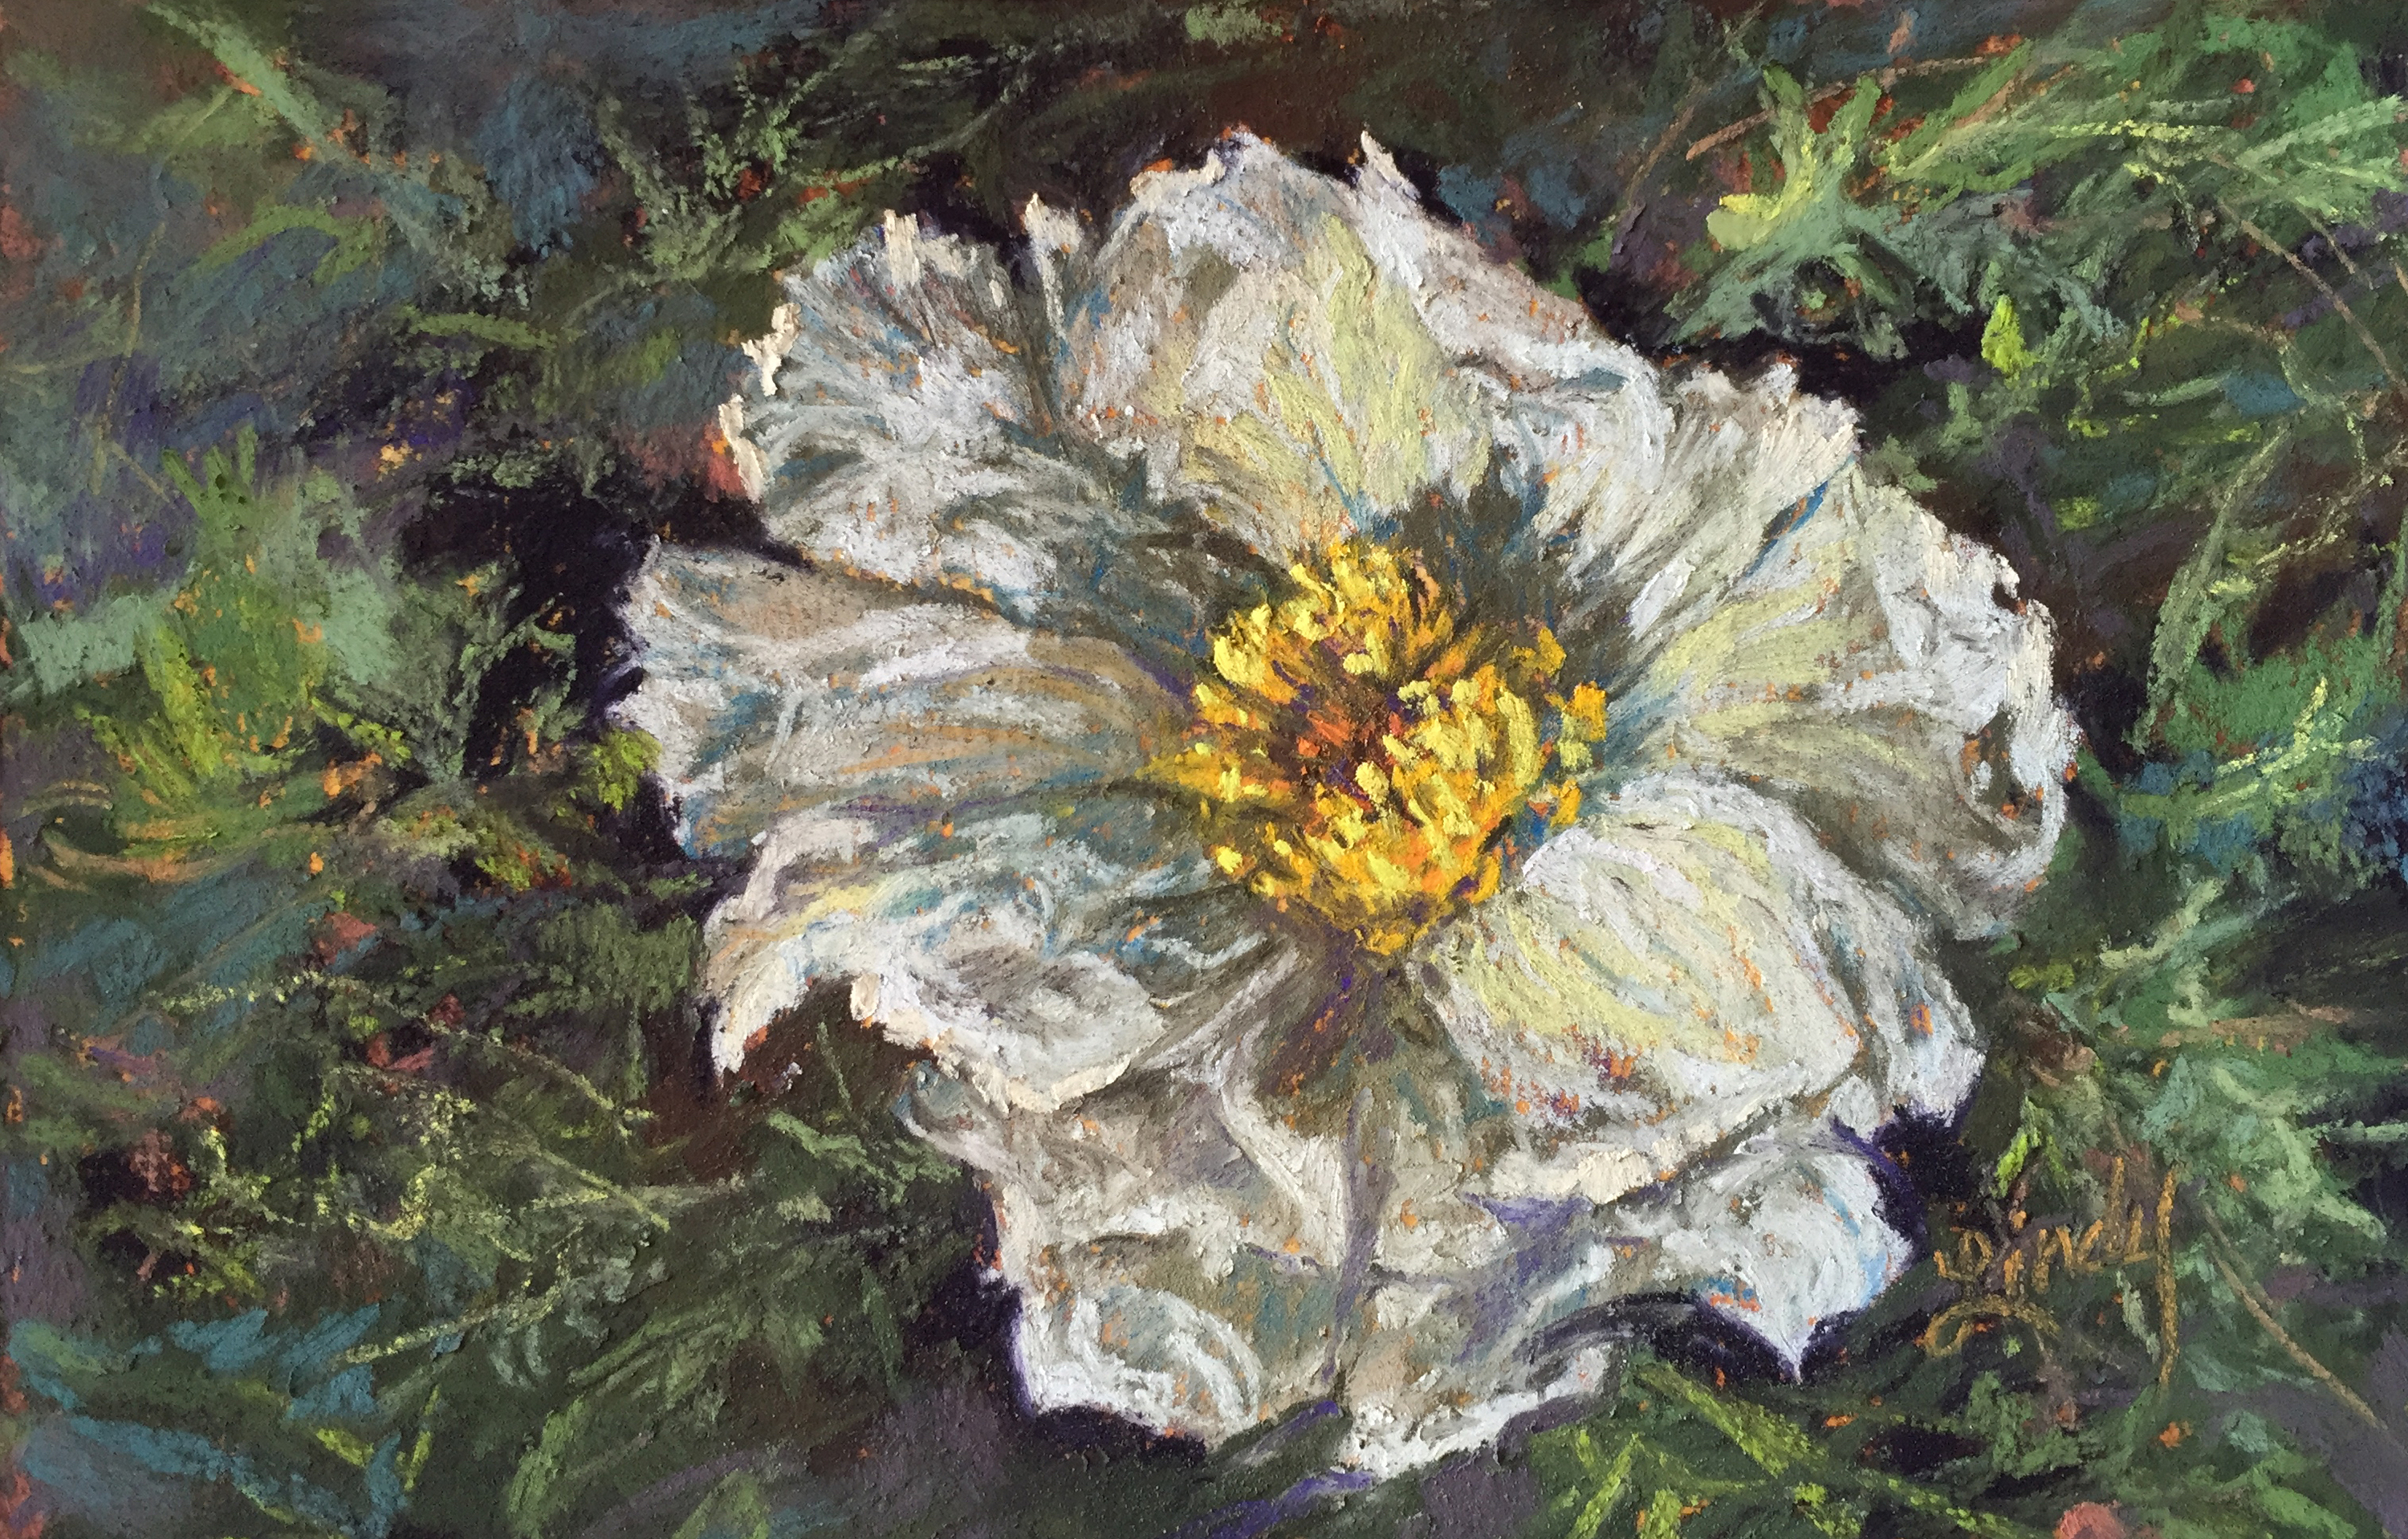 18g16 lace in thorns 4x6 pastel lindy c severns ix7pni